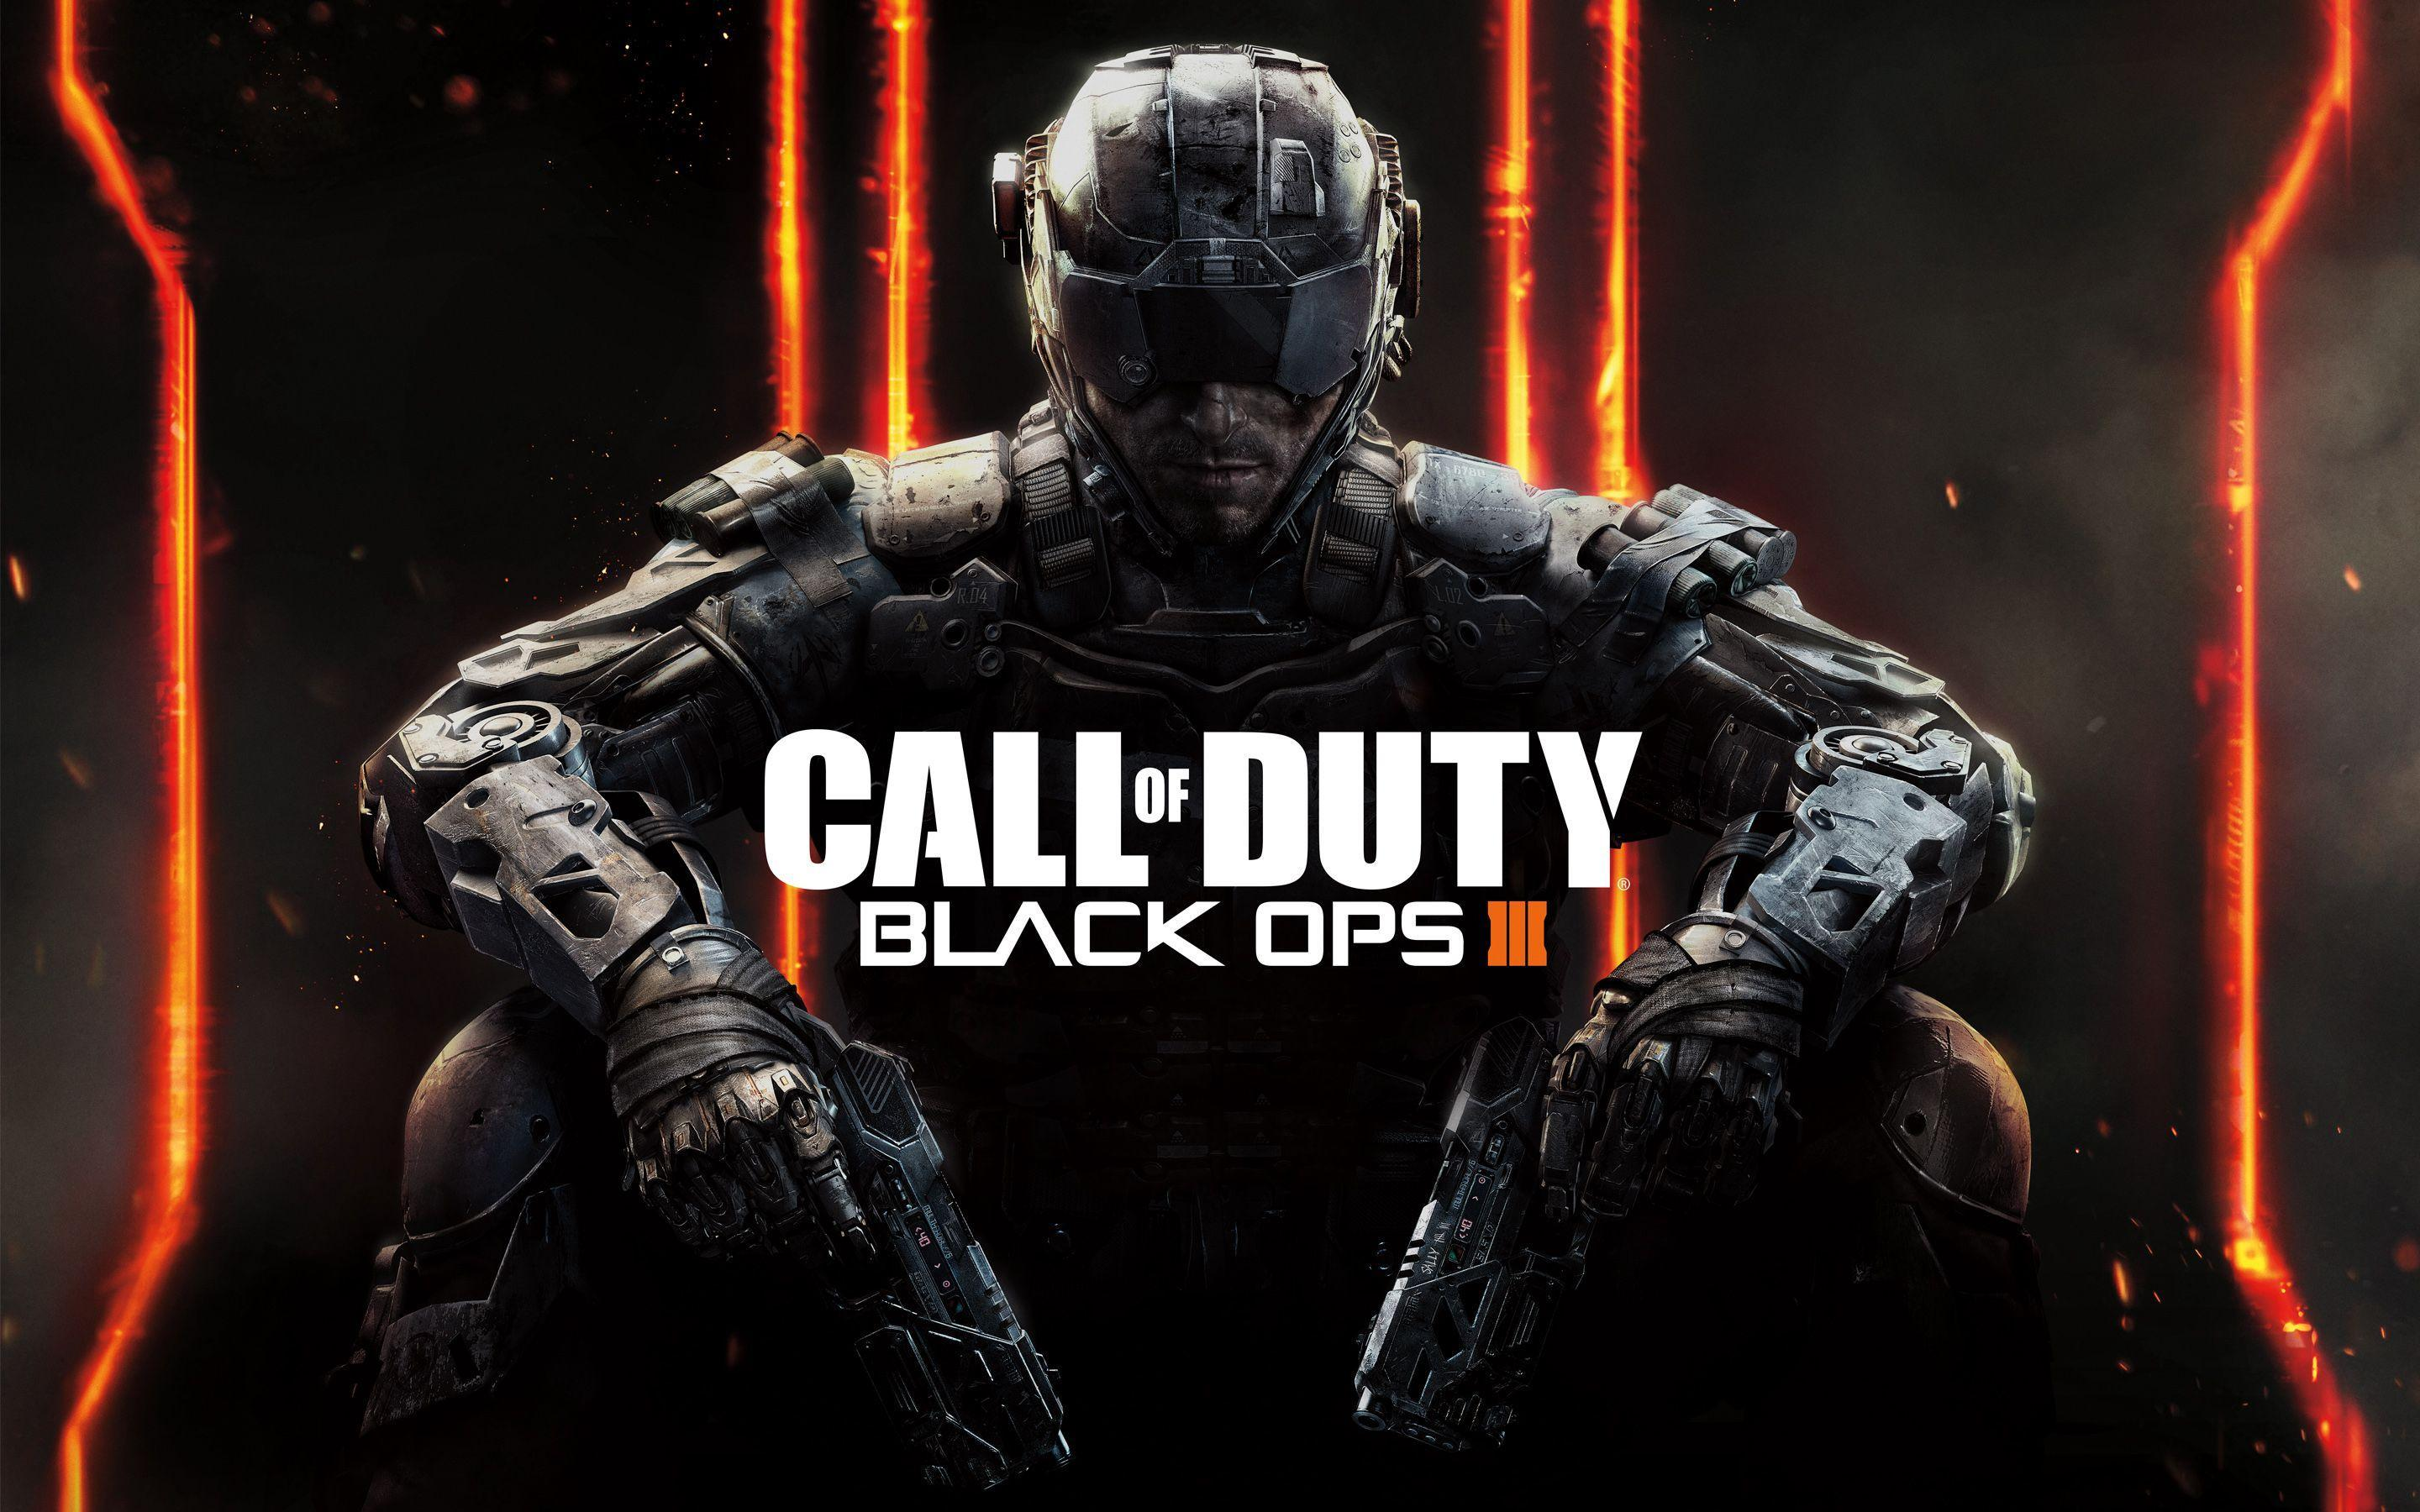 Call of Duty Black Ops III Wallpapers | HD Wallpapers